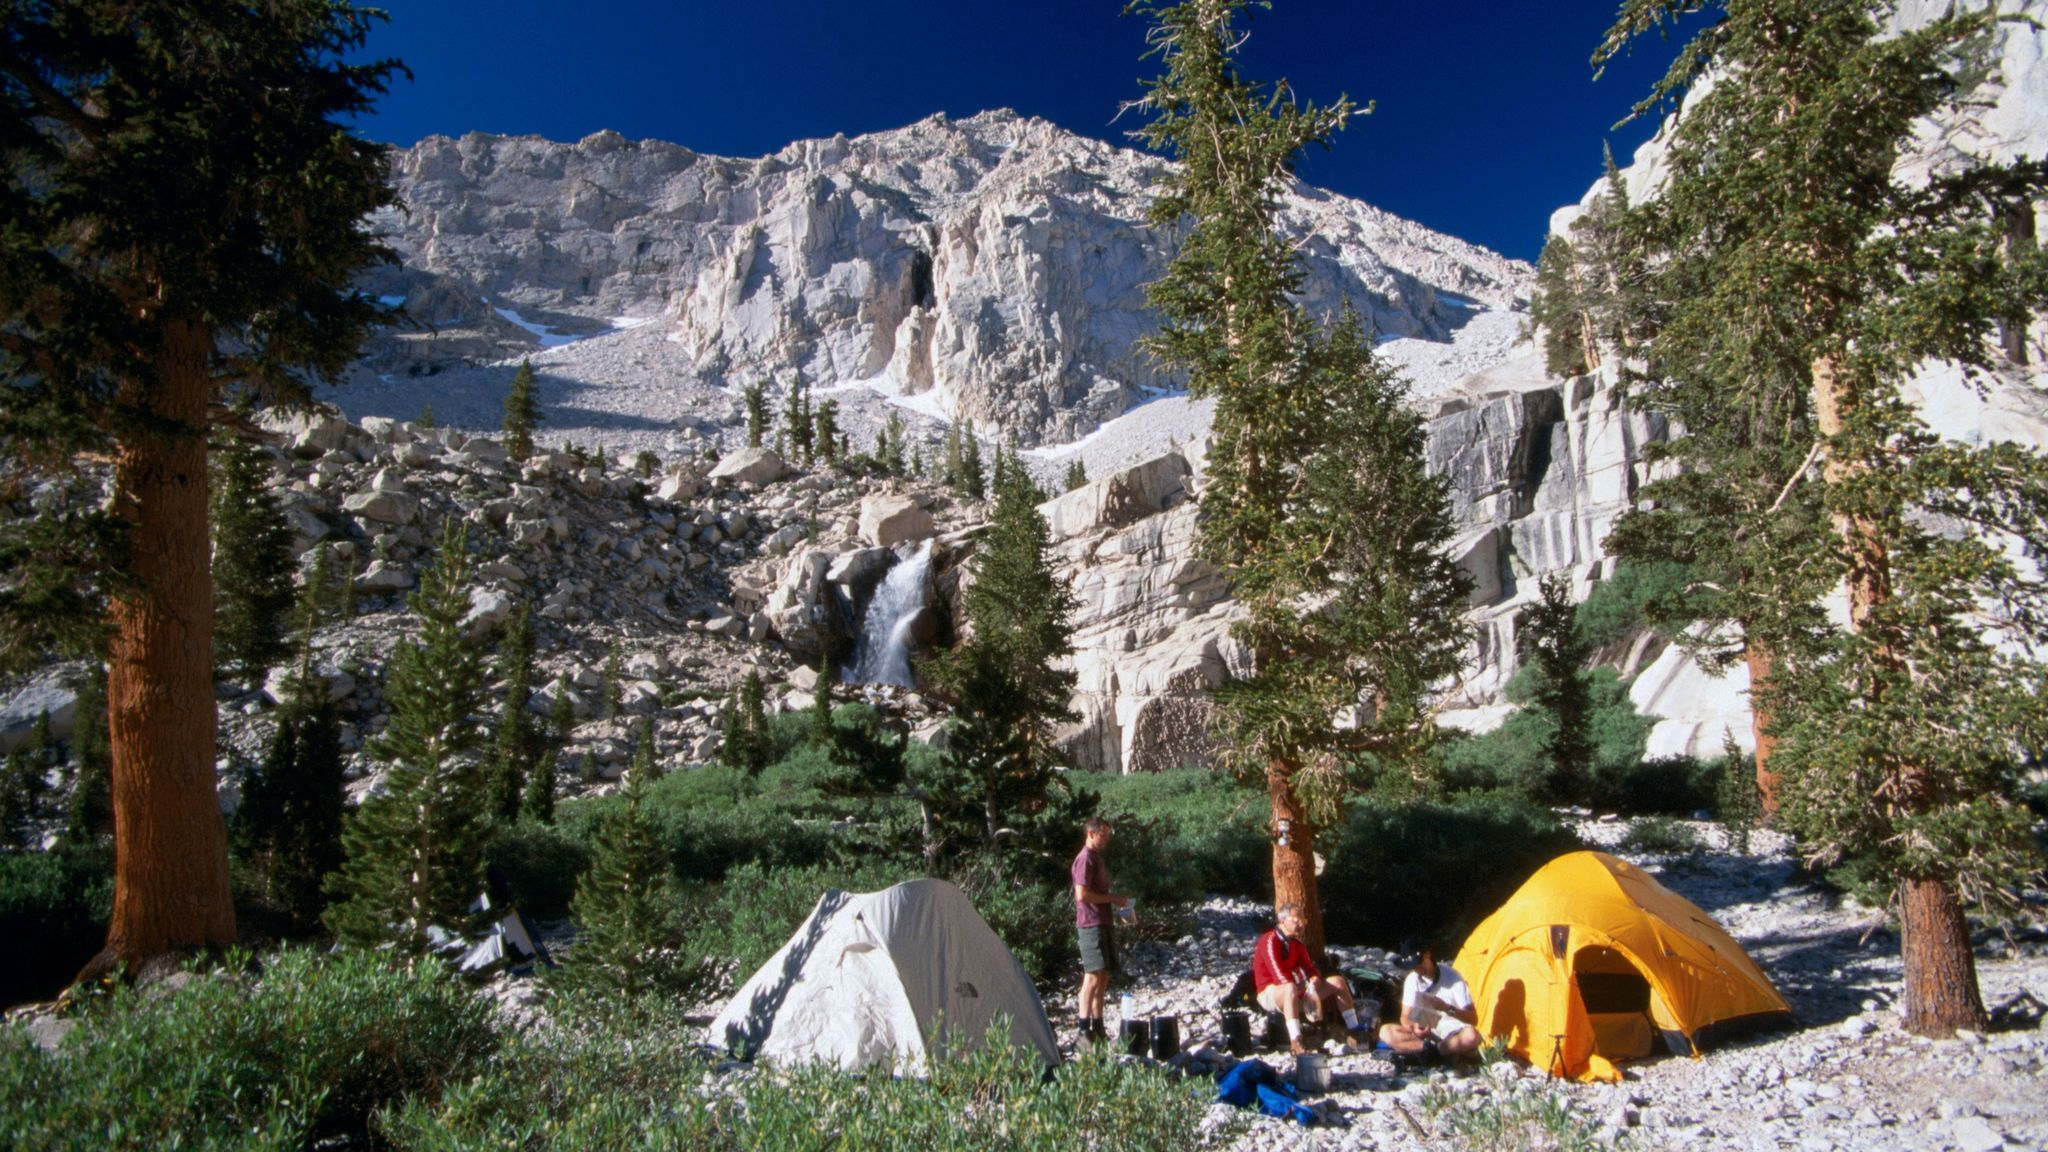 Campers on the Whitney Portal Trail, in the Sierra Nevada mountains, Inyo National Forest, Calif.